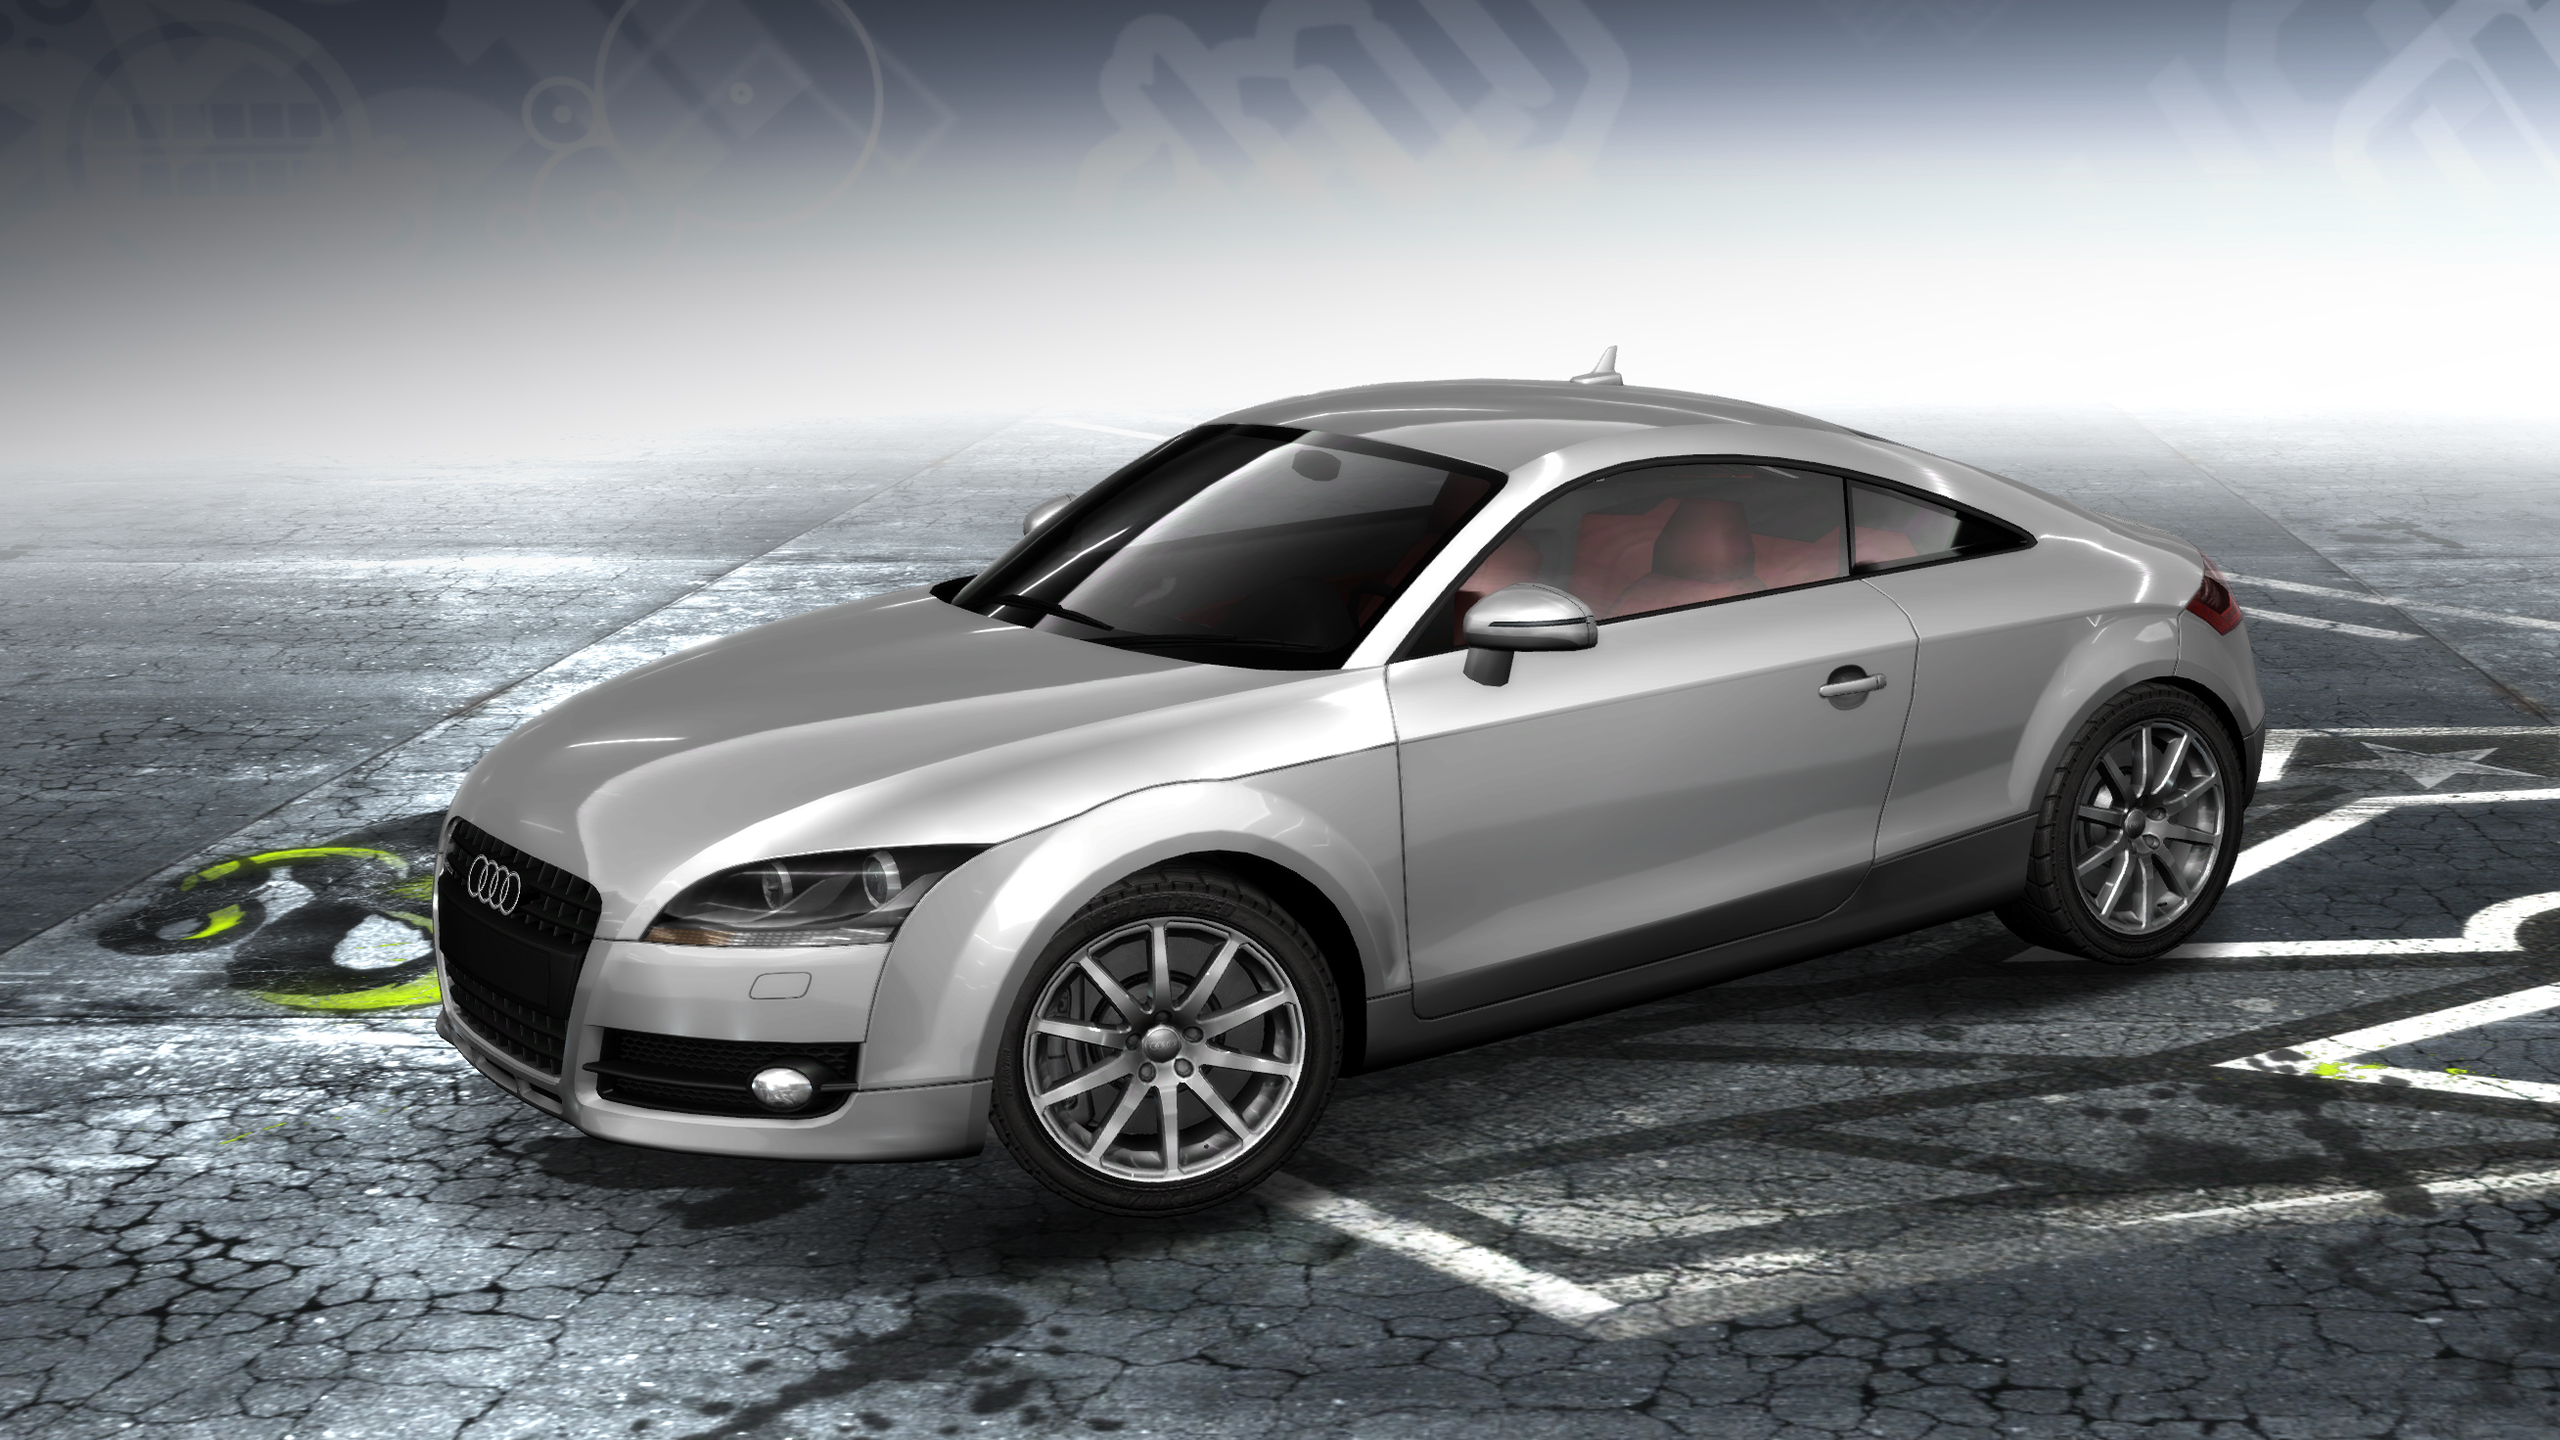 audi tt 3 2 quattro 8j need for speed wiki fandom powered by wikia. Black Bedroom Furniture Sets. Home Design Ideas